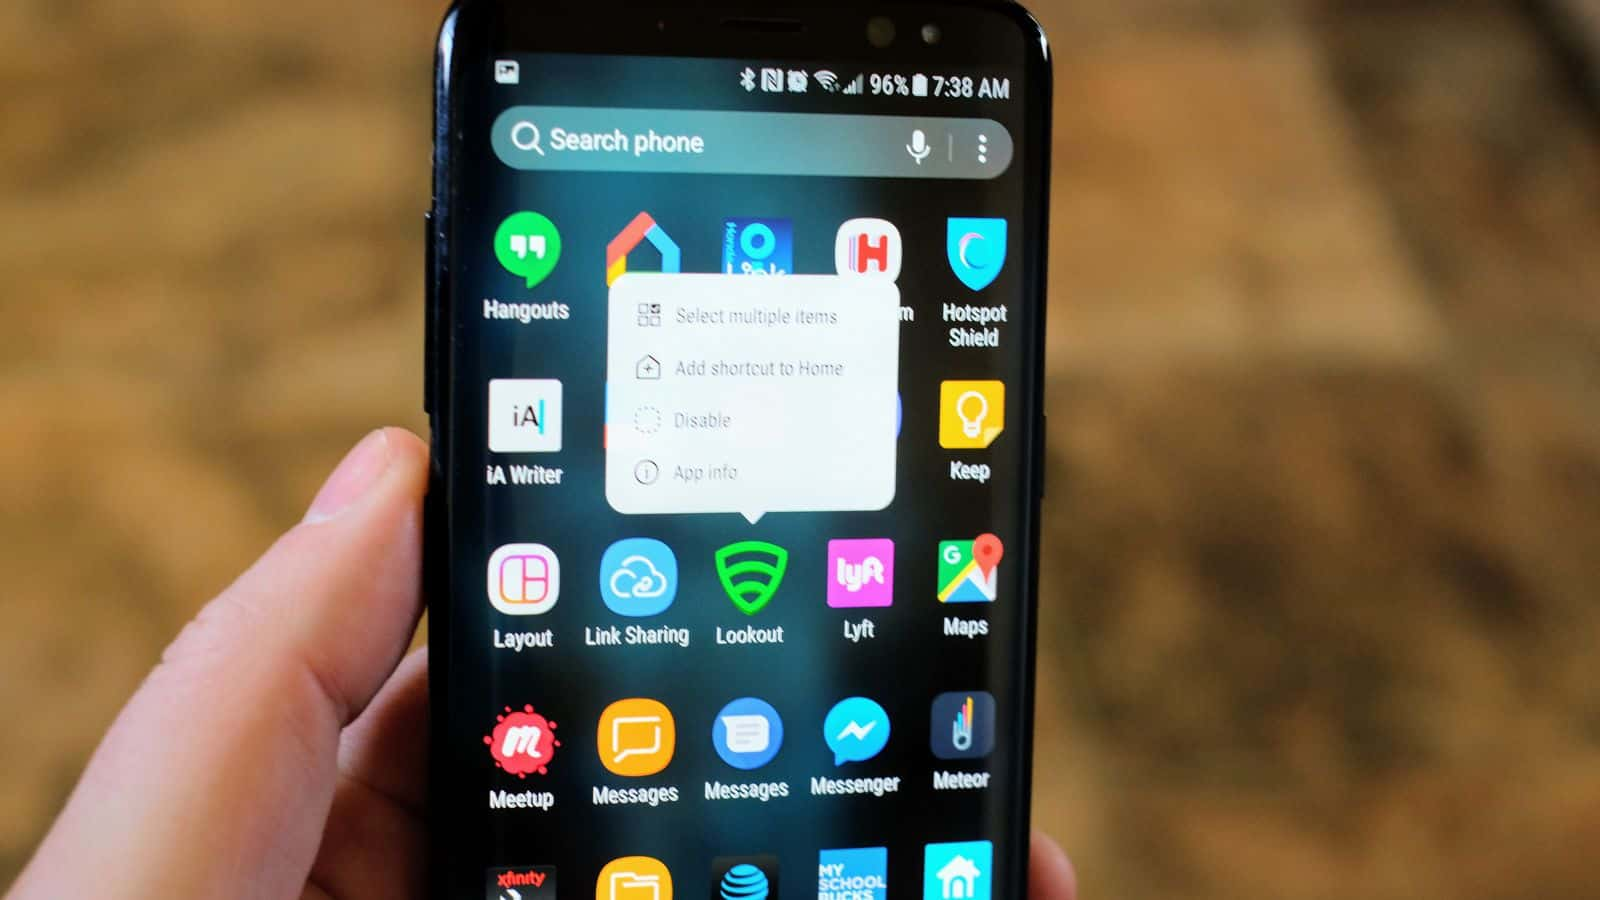 How to Disable All Bloatware on Galaxy S8 and S8+